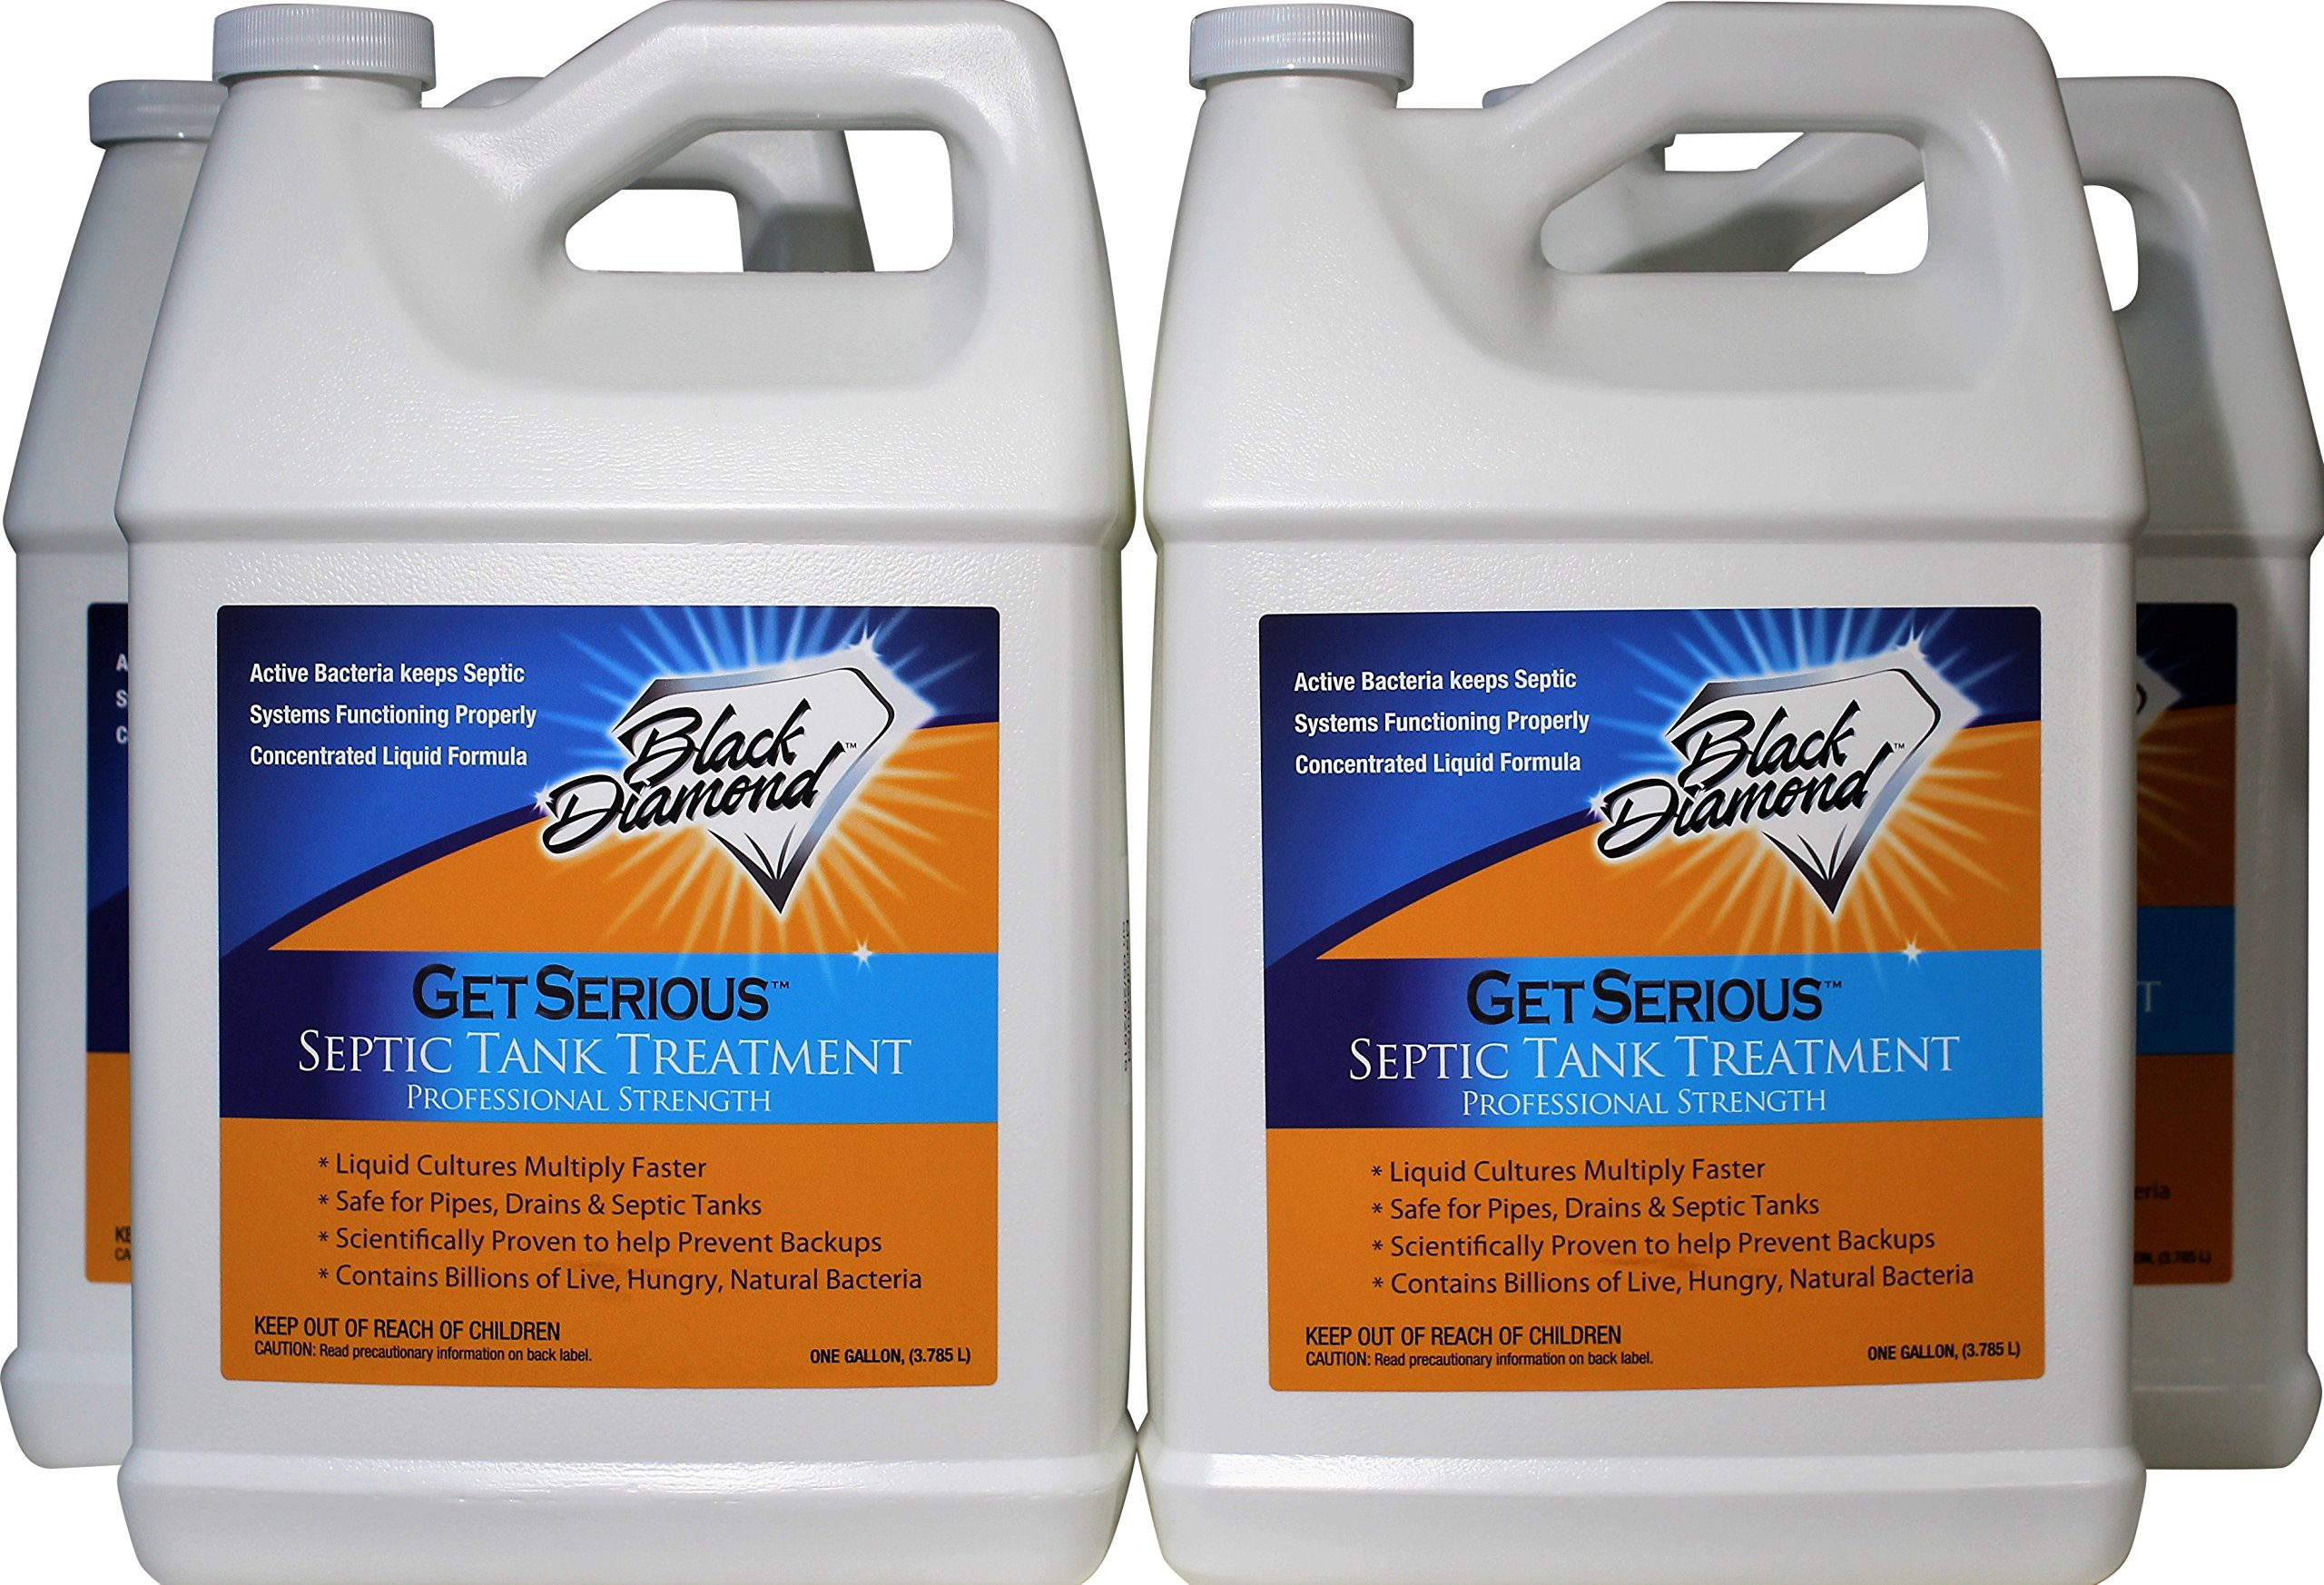 Black Diamond Stoneworks GET SERIOUS Septic Tank Treatment Liquid Natural Enzymes for Residential, Commercial, Industrial, RV's Systems. (4, Gallon)